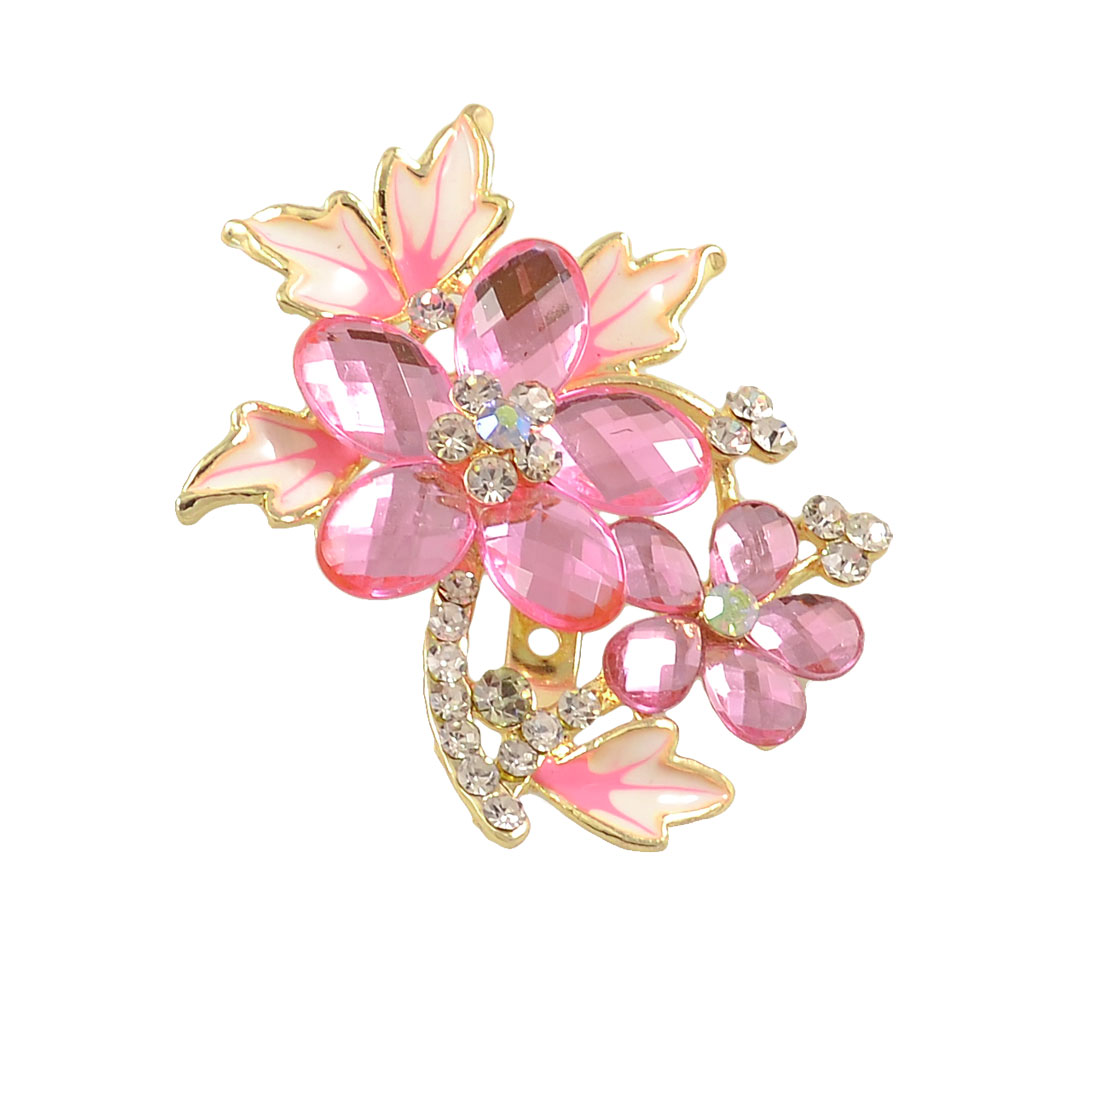 Lady Clear Pink Rhinestone Inlaid Metal Flowering Branch Decor Breast Pin Brooch